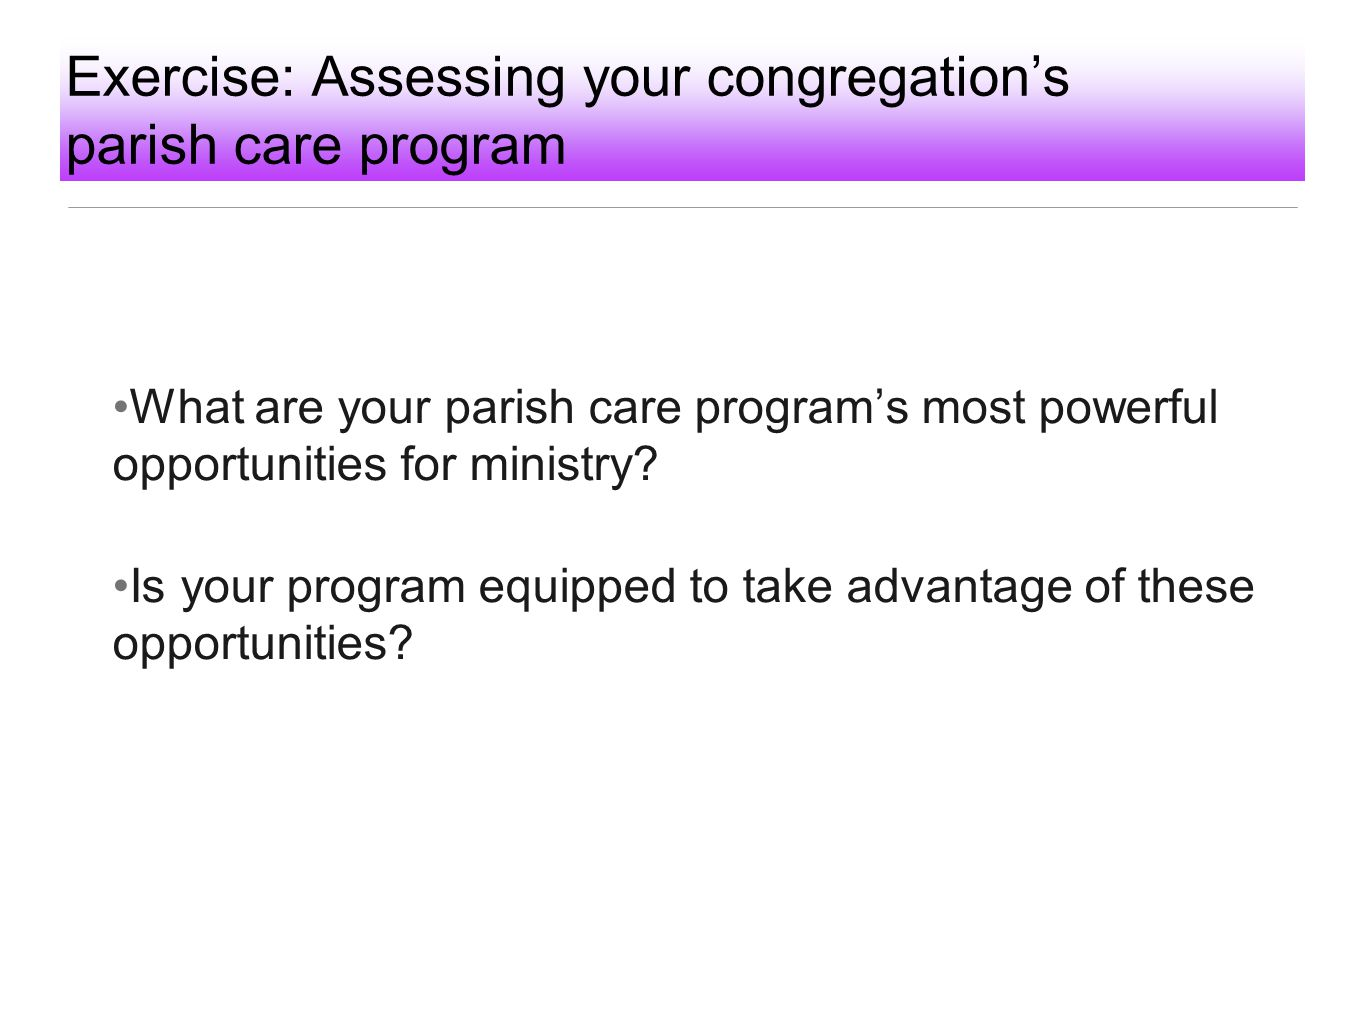 Exercise: Assessing your congregation's parish care program What are your parish care program's most powerful opportunities for ministry? Is your prog